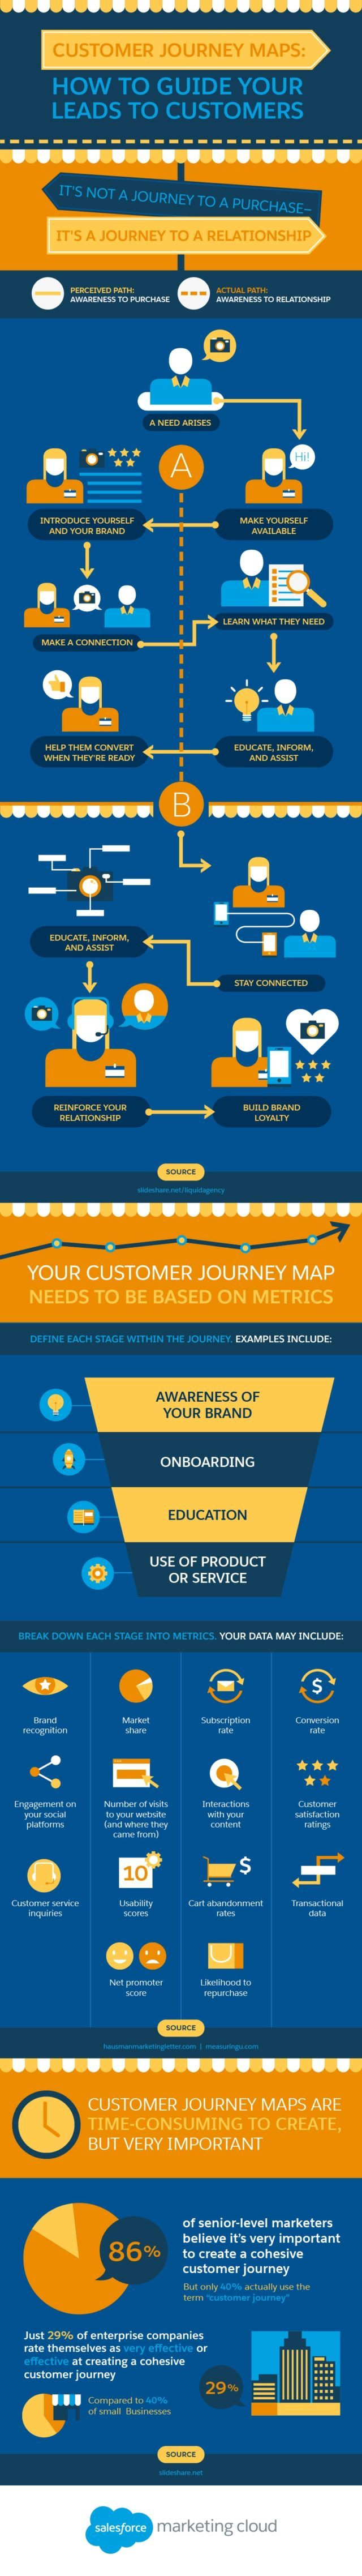 customer journey maps how to guide your leads to customers embed